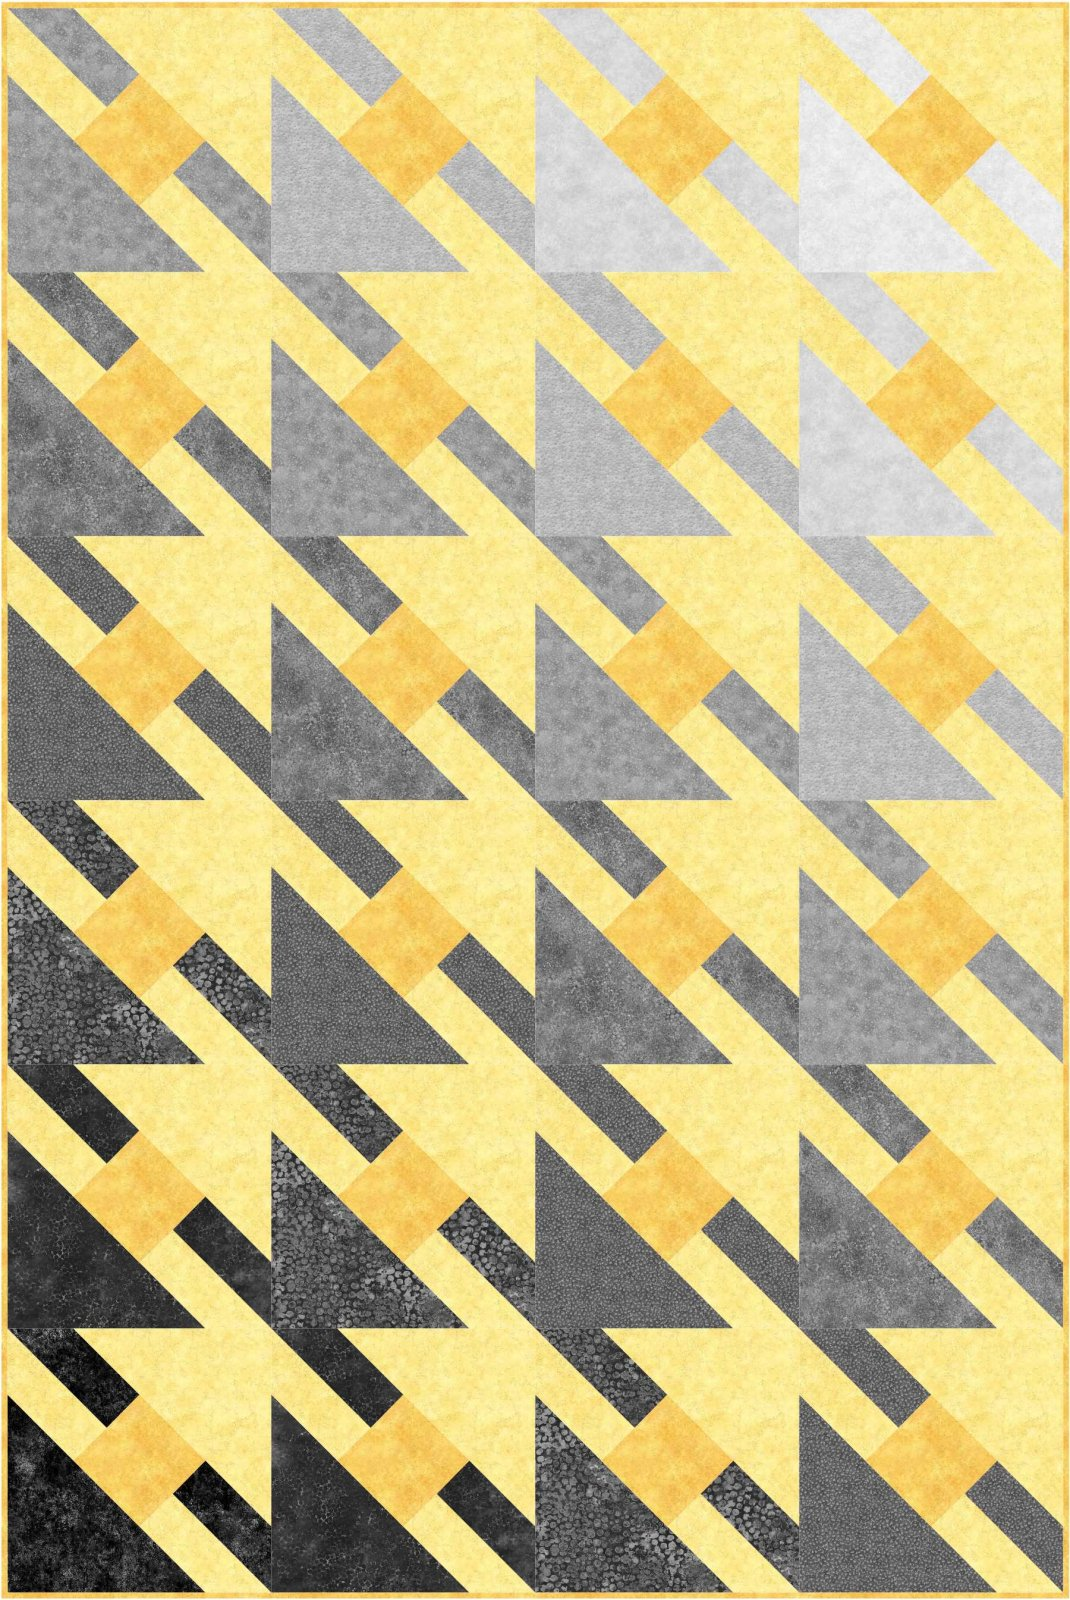 Dupont Circle pattern